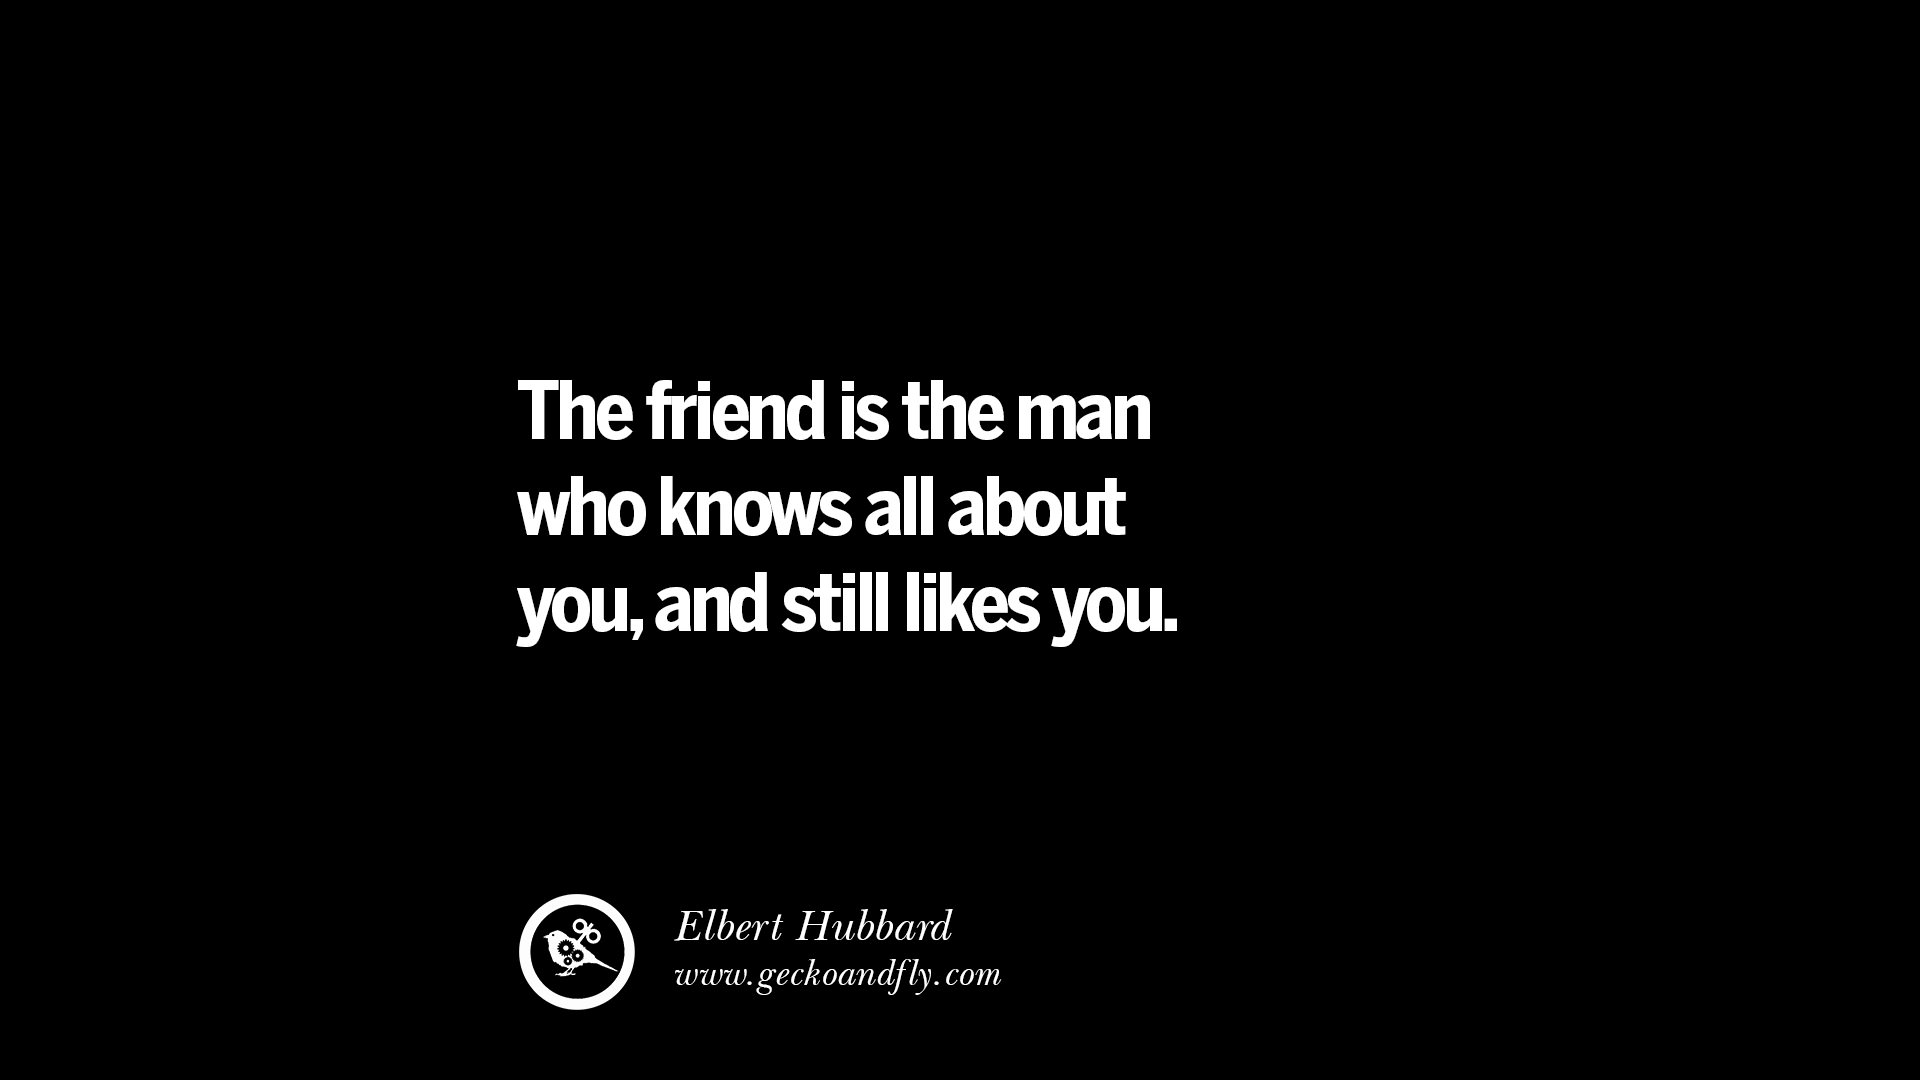 Quotes About Friendship Lovers Quotes About Friendship And Lovers Pinjason Coleman On